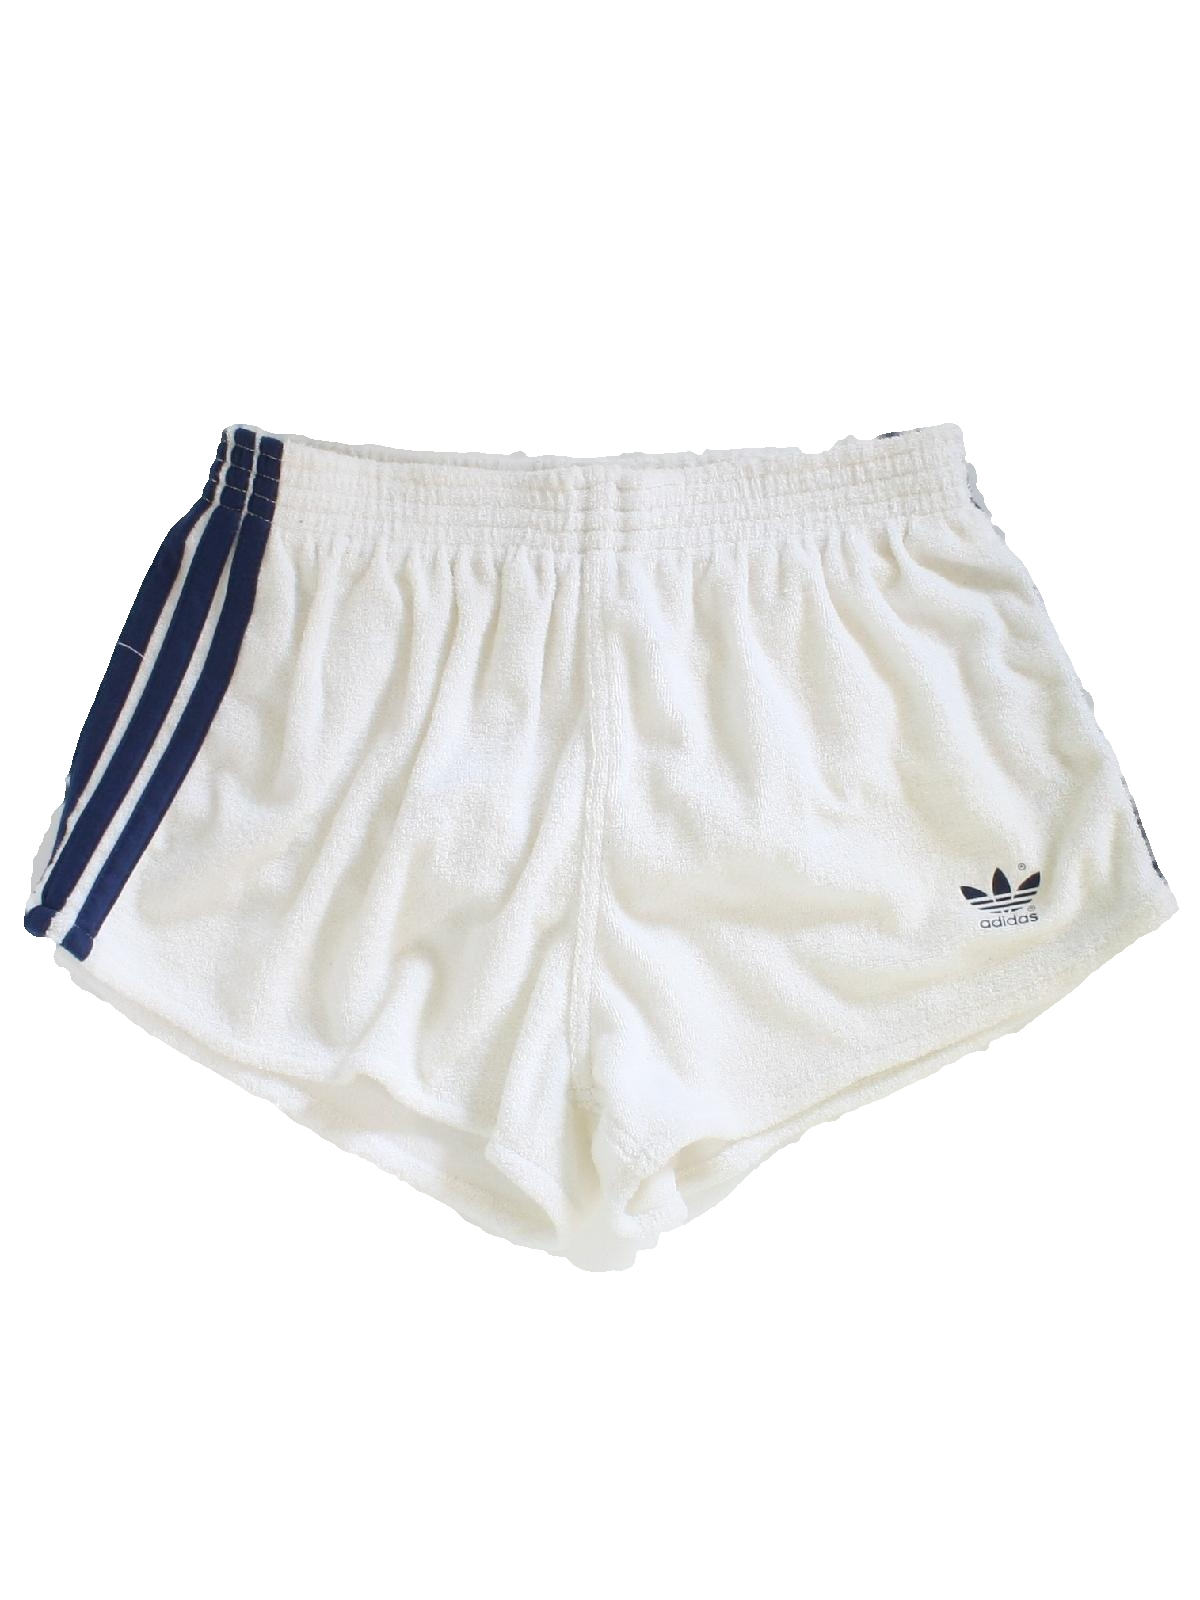 Mens Gym Shorts. Hit the gym in men's shorts. Pick out the men's gym shorts fit for the activity at hand. Head to the courts in basketball litastmaterlo.gq a relaxed fit crafted from a sleek fabric like mesh.